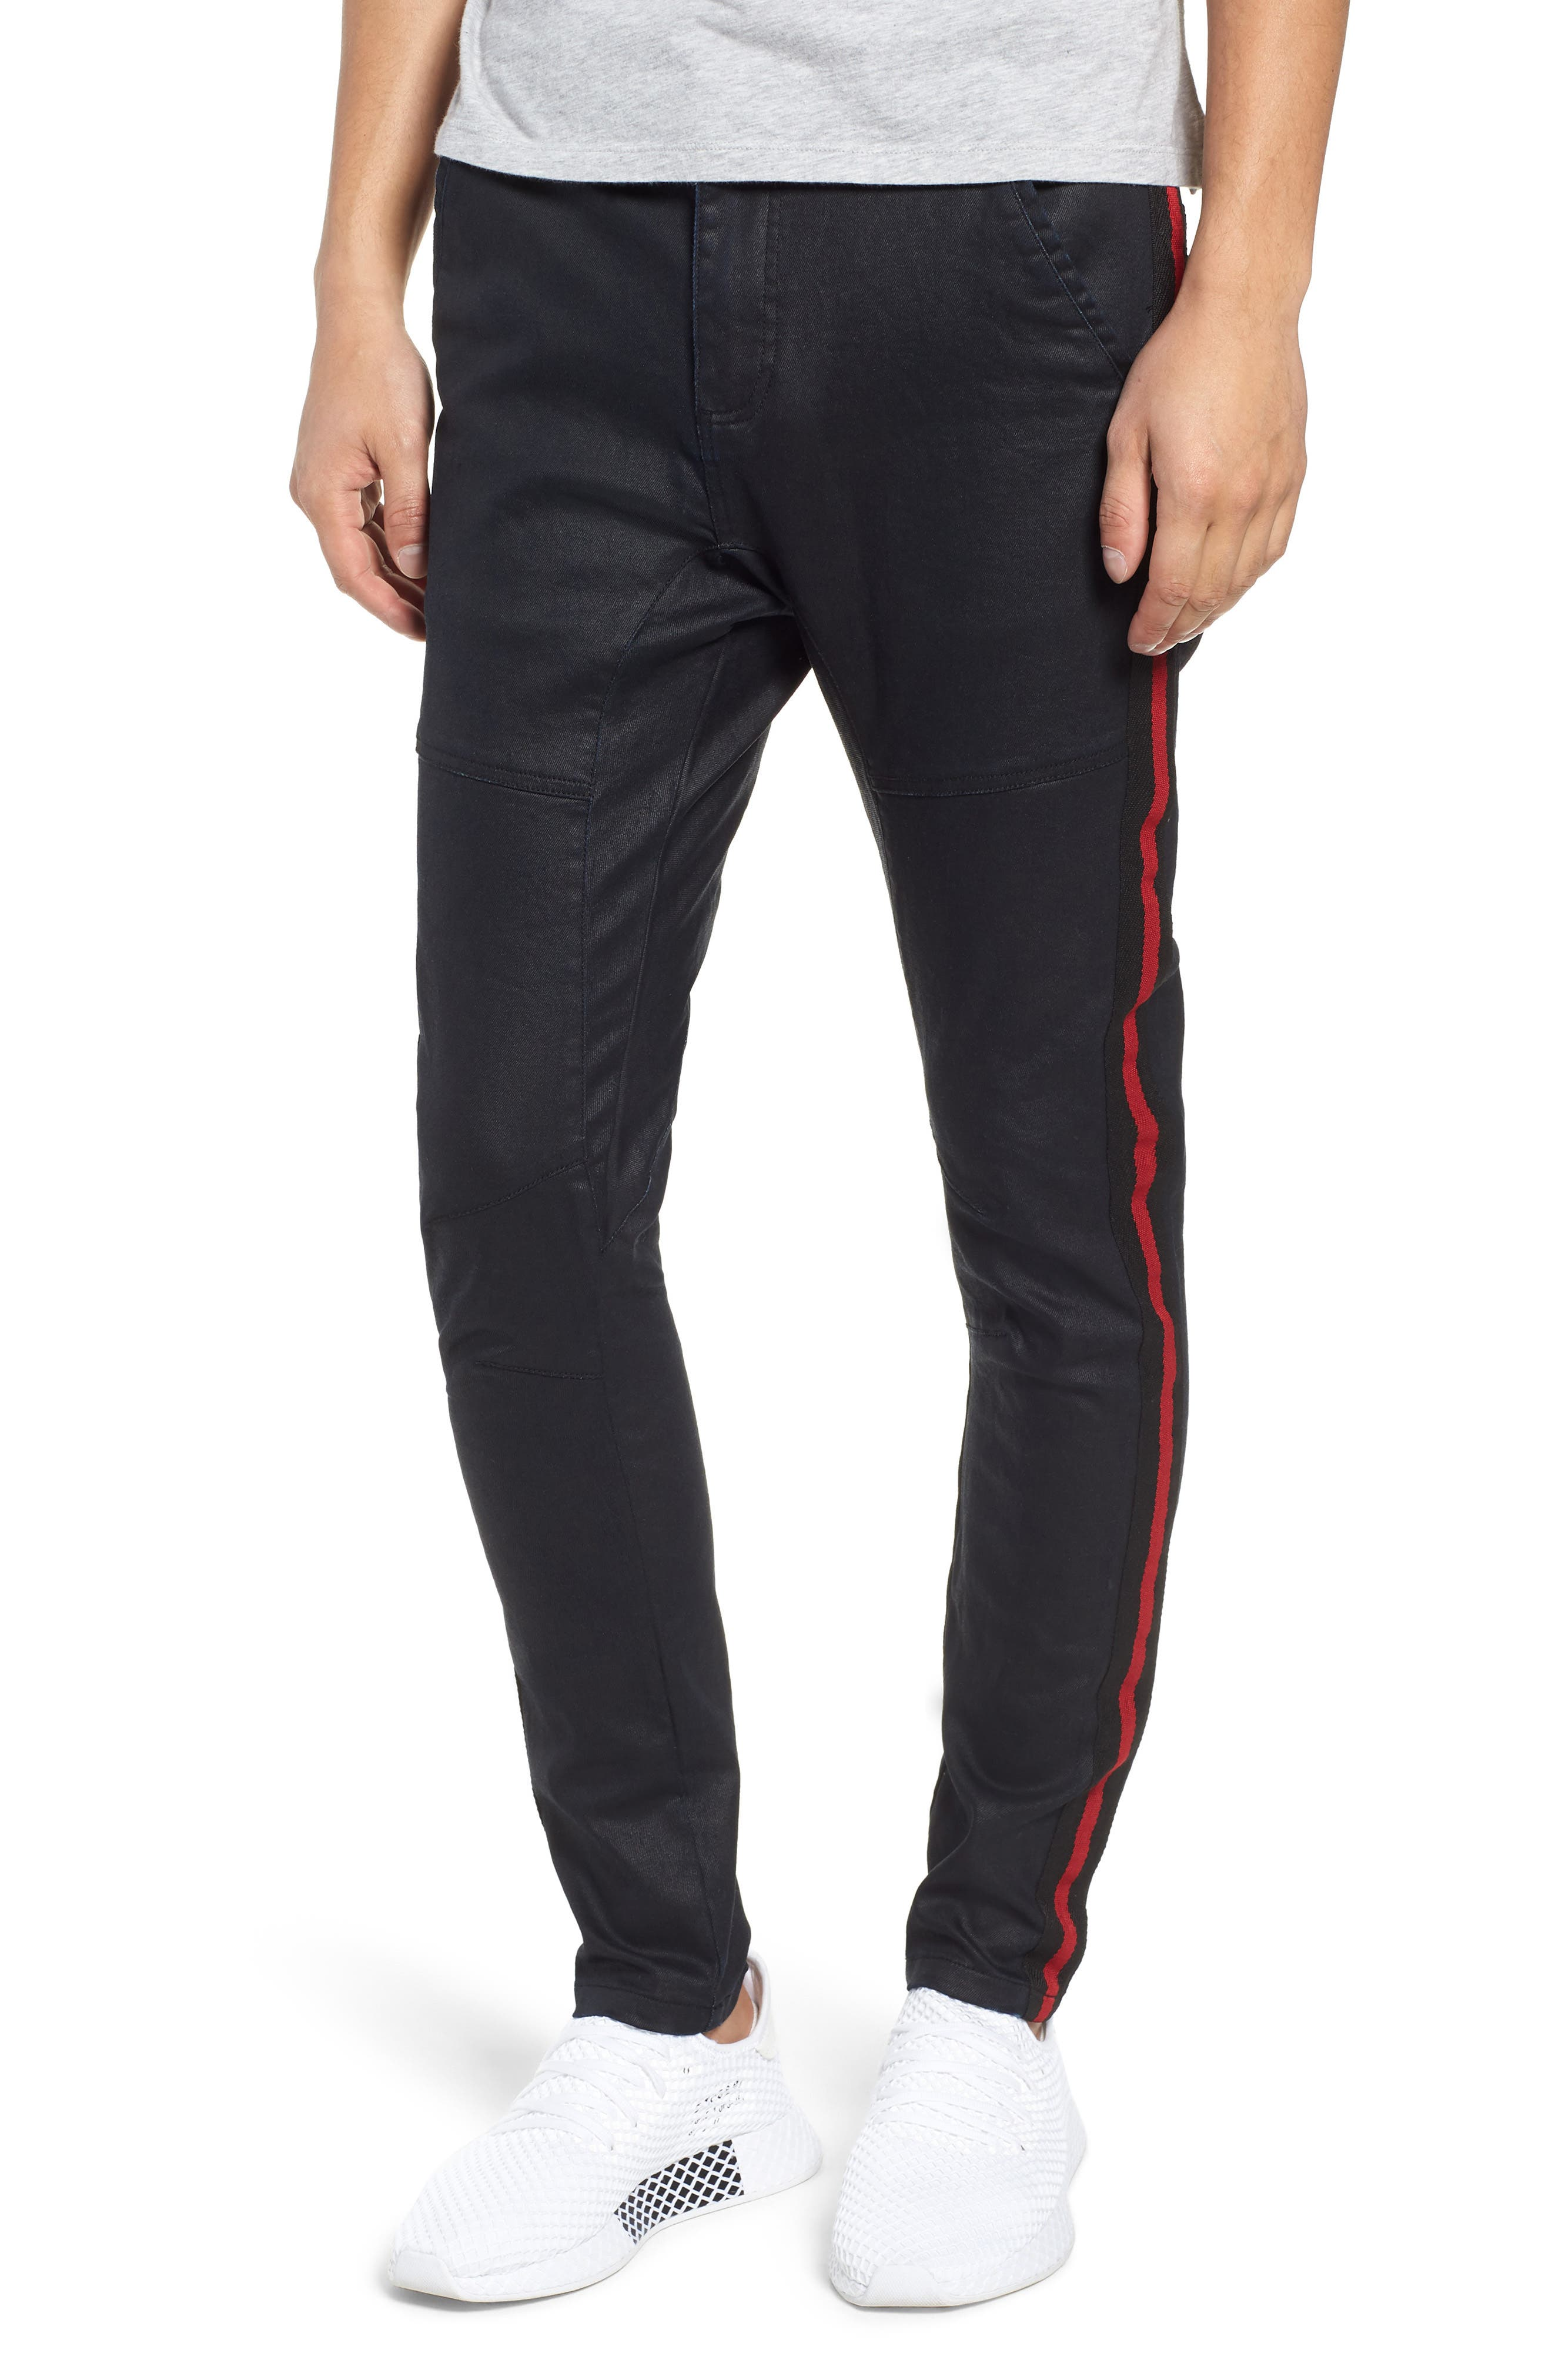 Baseline Taped Skinny Fit Jeans,                             Main thumbnail 1, color,                             WAX BLACK RED STRIPE